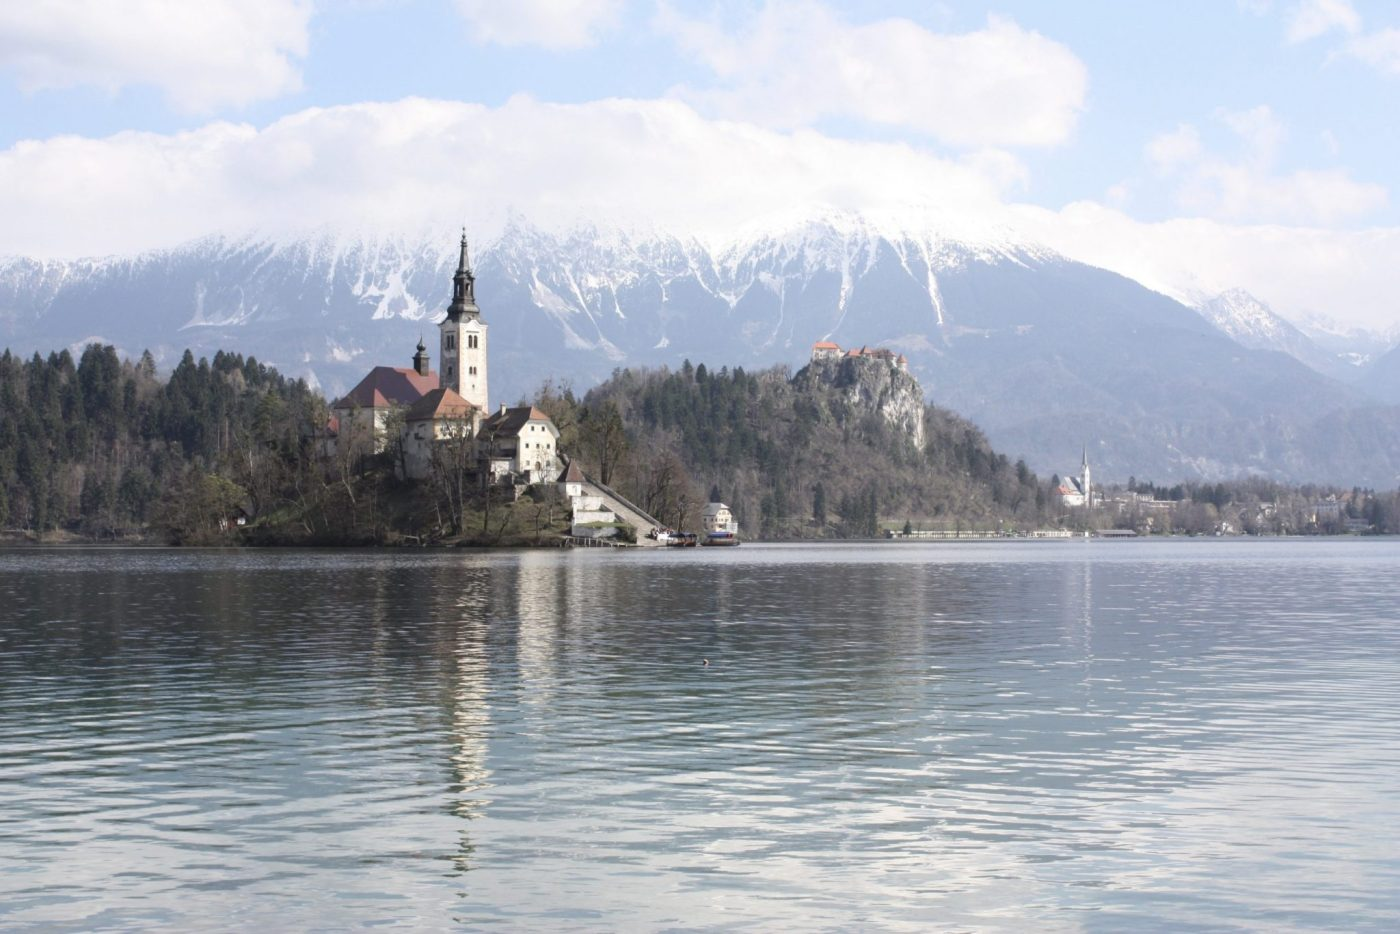 One of the many places Lucy and Matt saw while travelling as a couple: Lake Bled